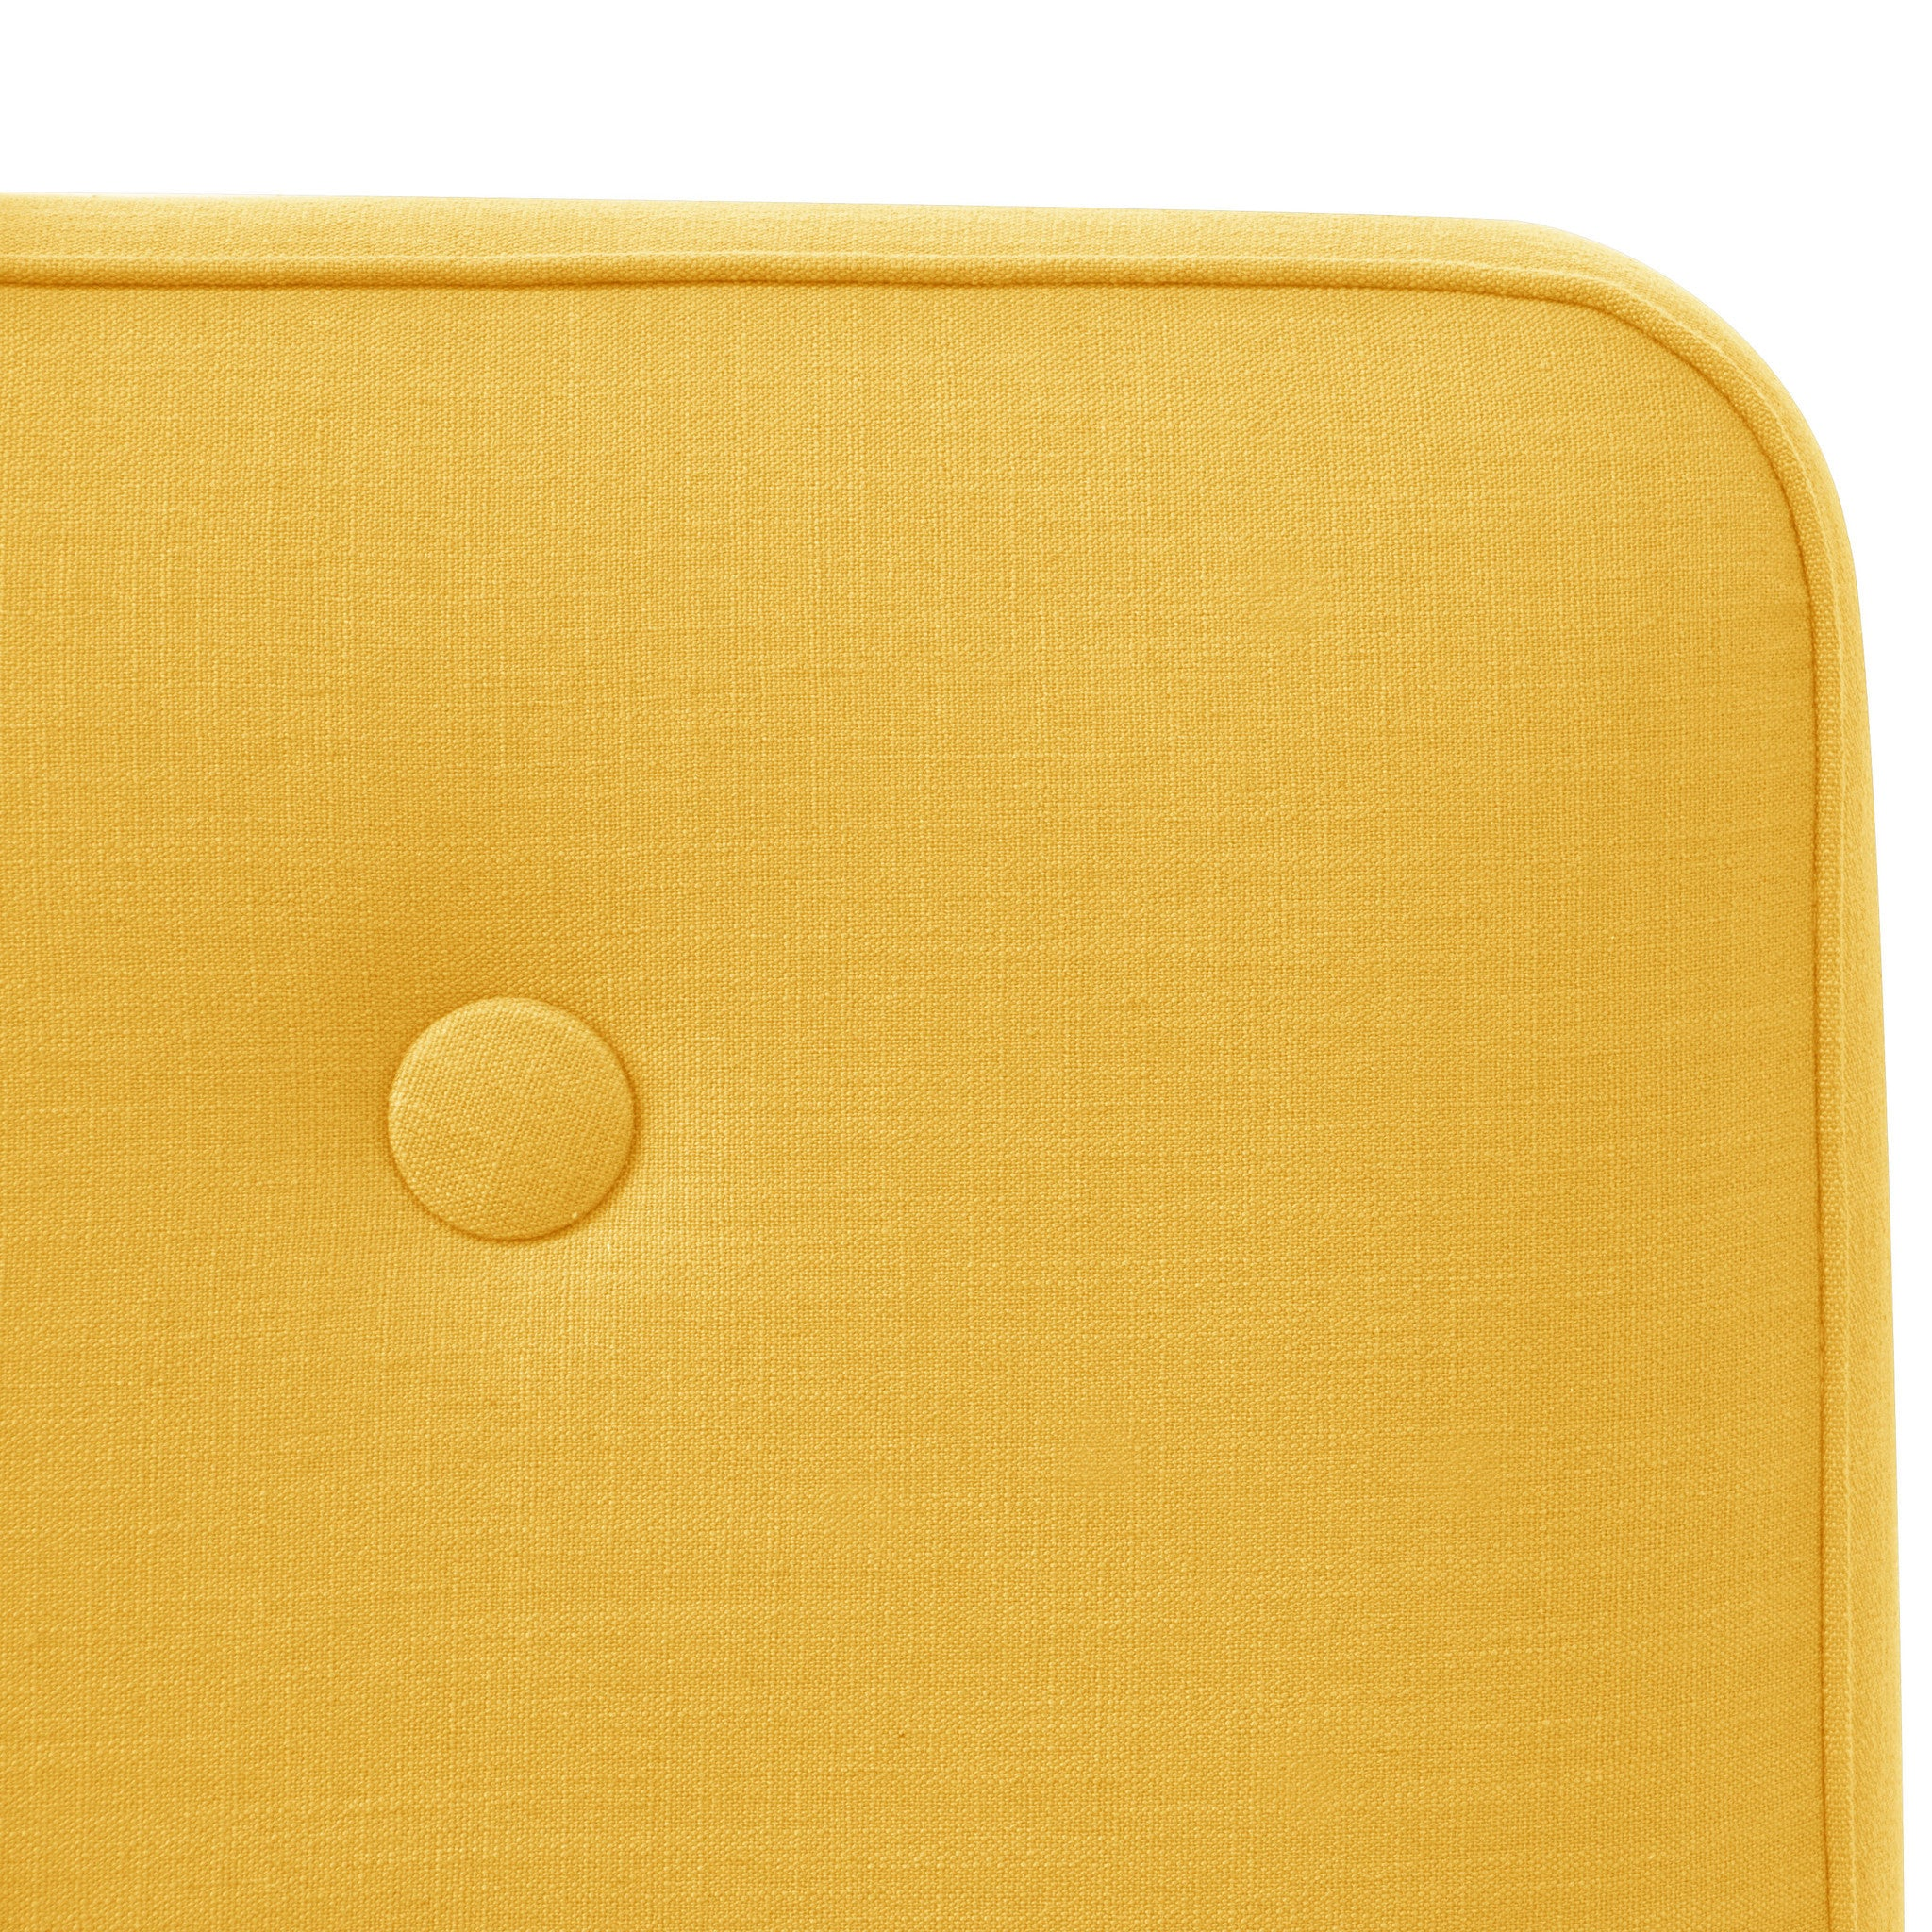 ... Angelo:HOME Accent Chair With Button In Linen French Yellow    Angelo:HOME